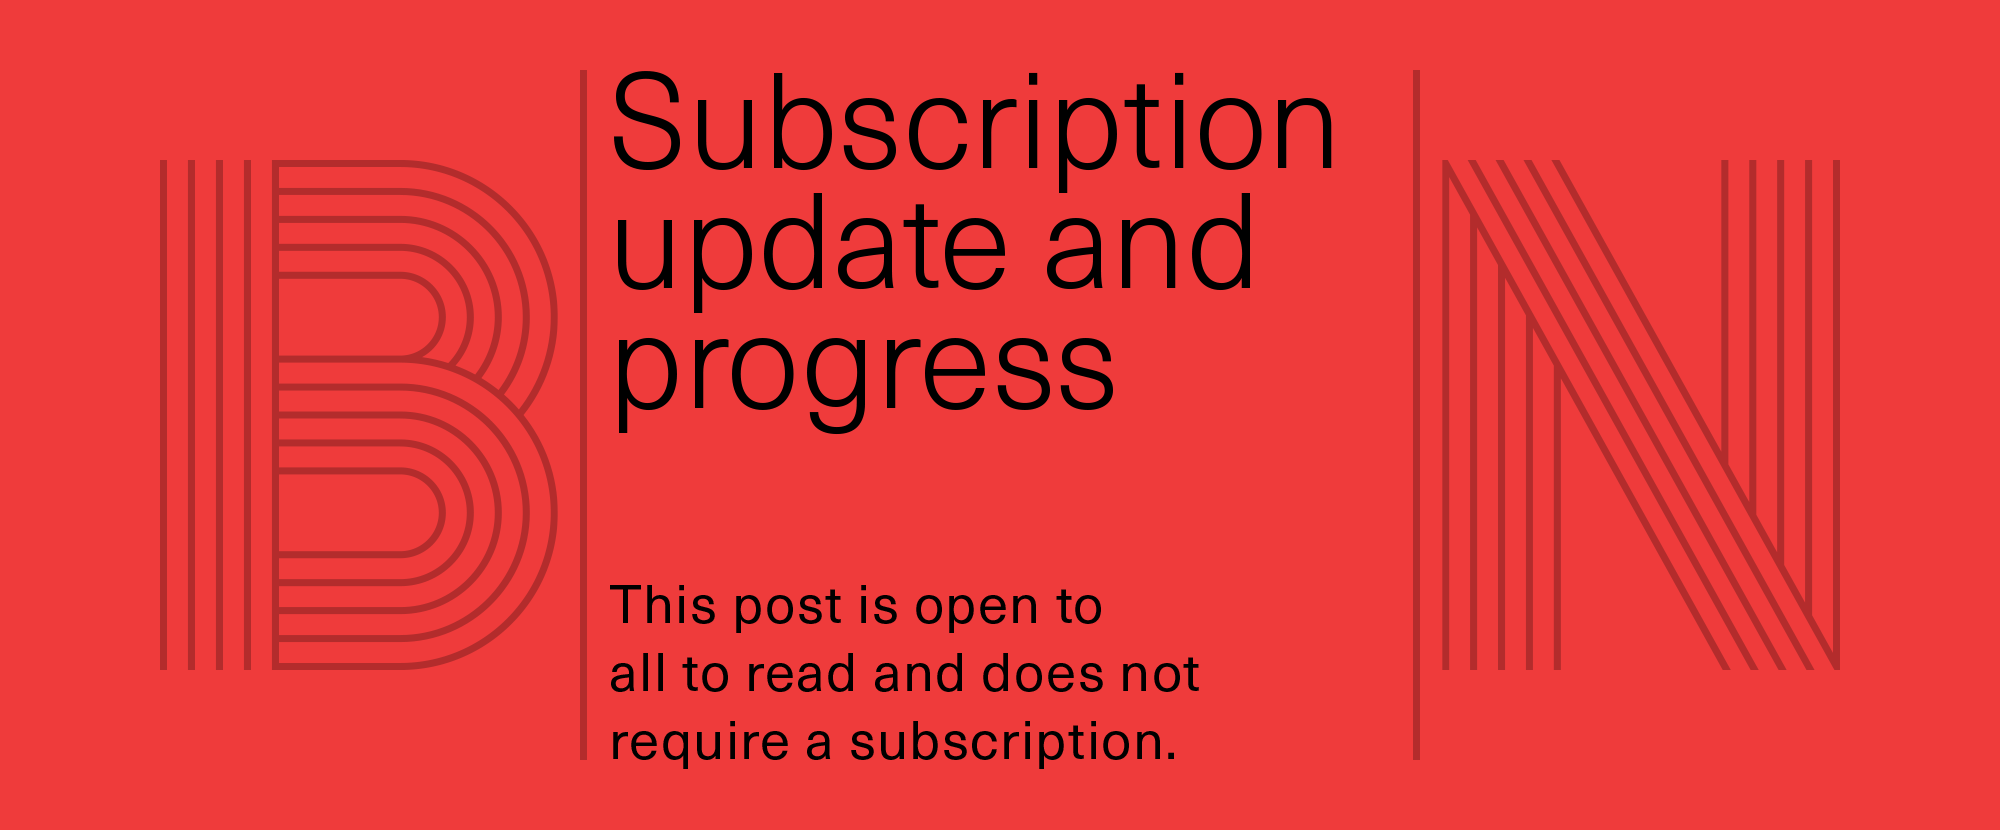 Subscription Model Progress and Update